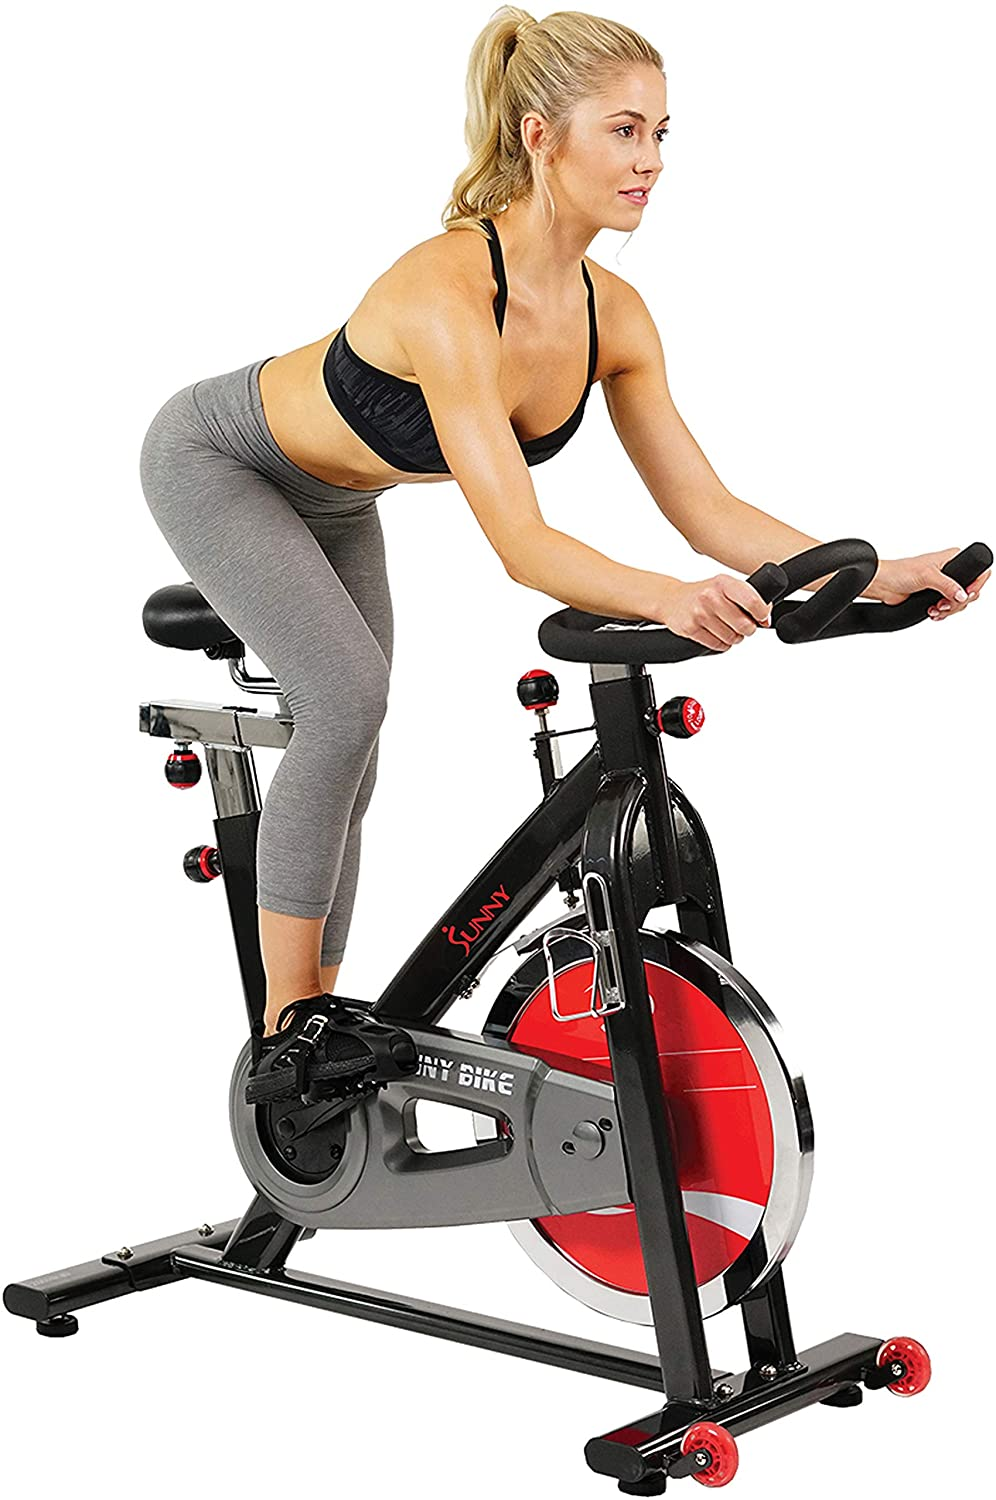 Sunny Health & Fitness Exercise Bike SF-B1002C Review